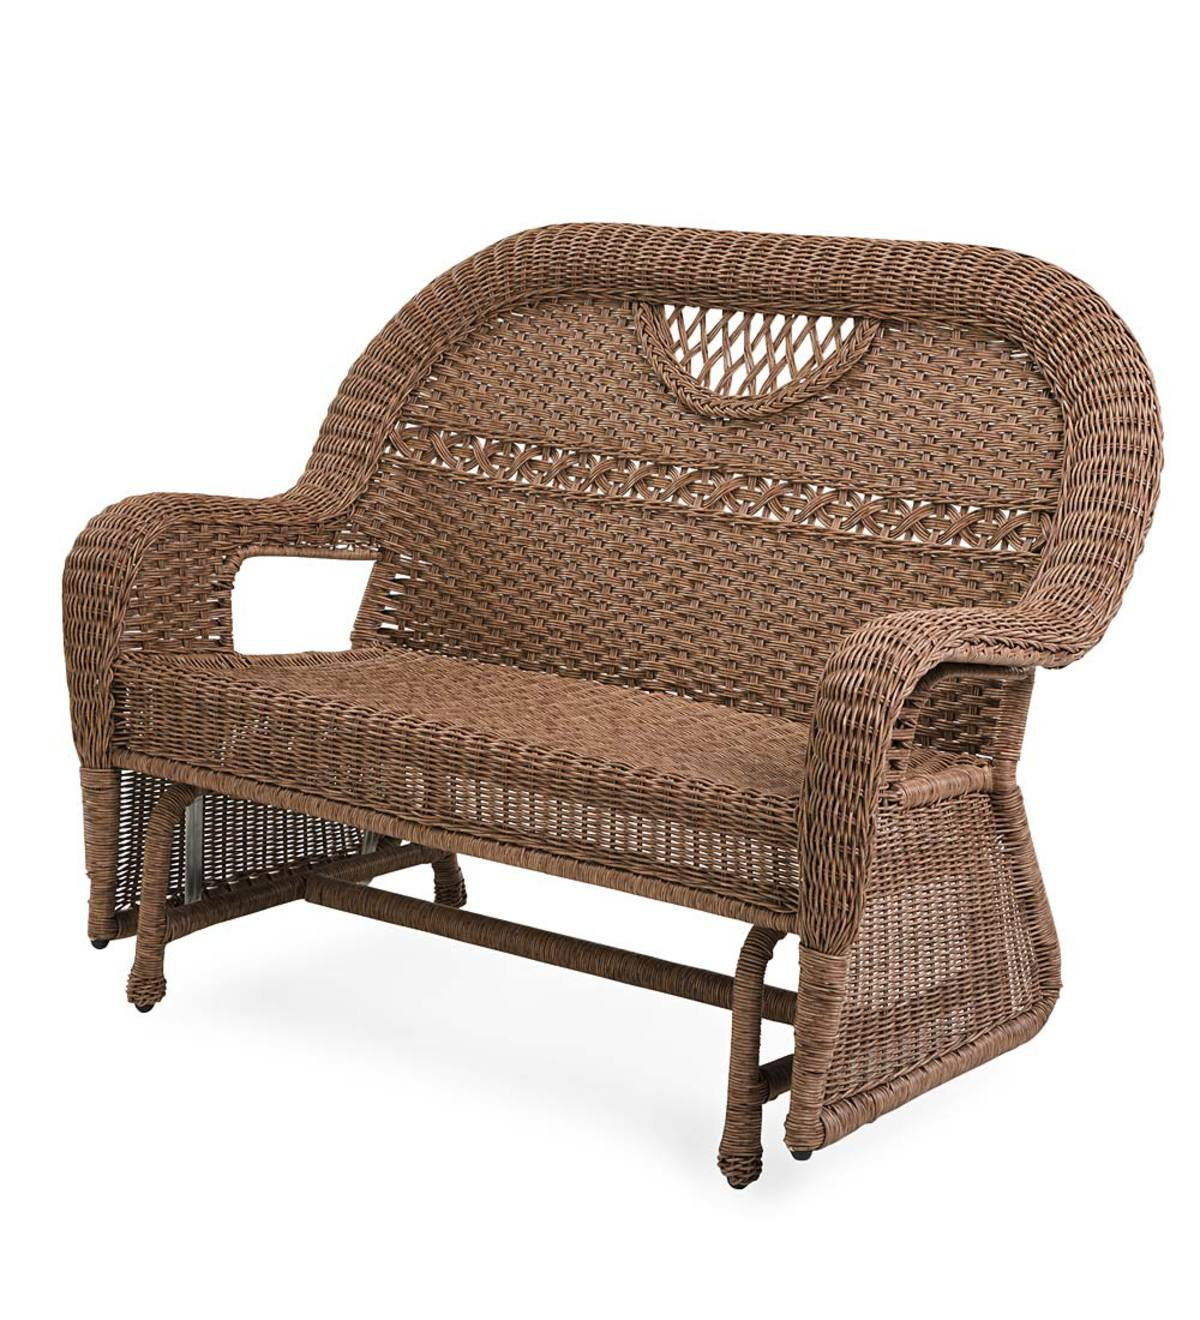 Prospect Hill Wicker Love Seat Glider